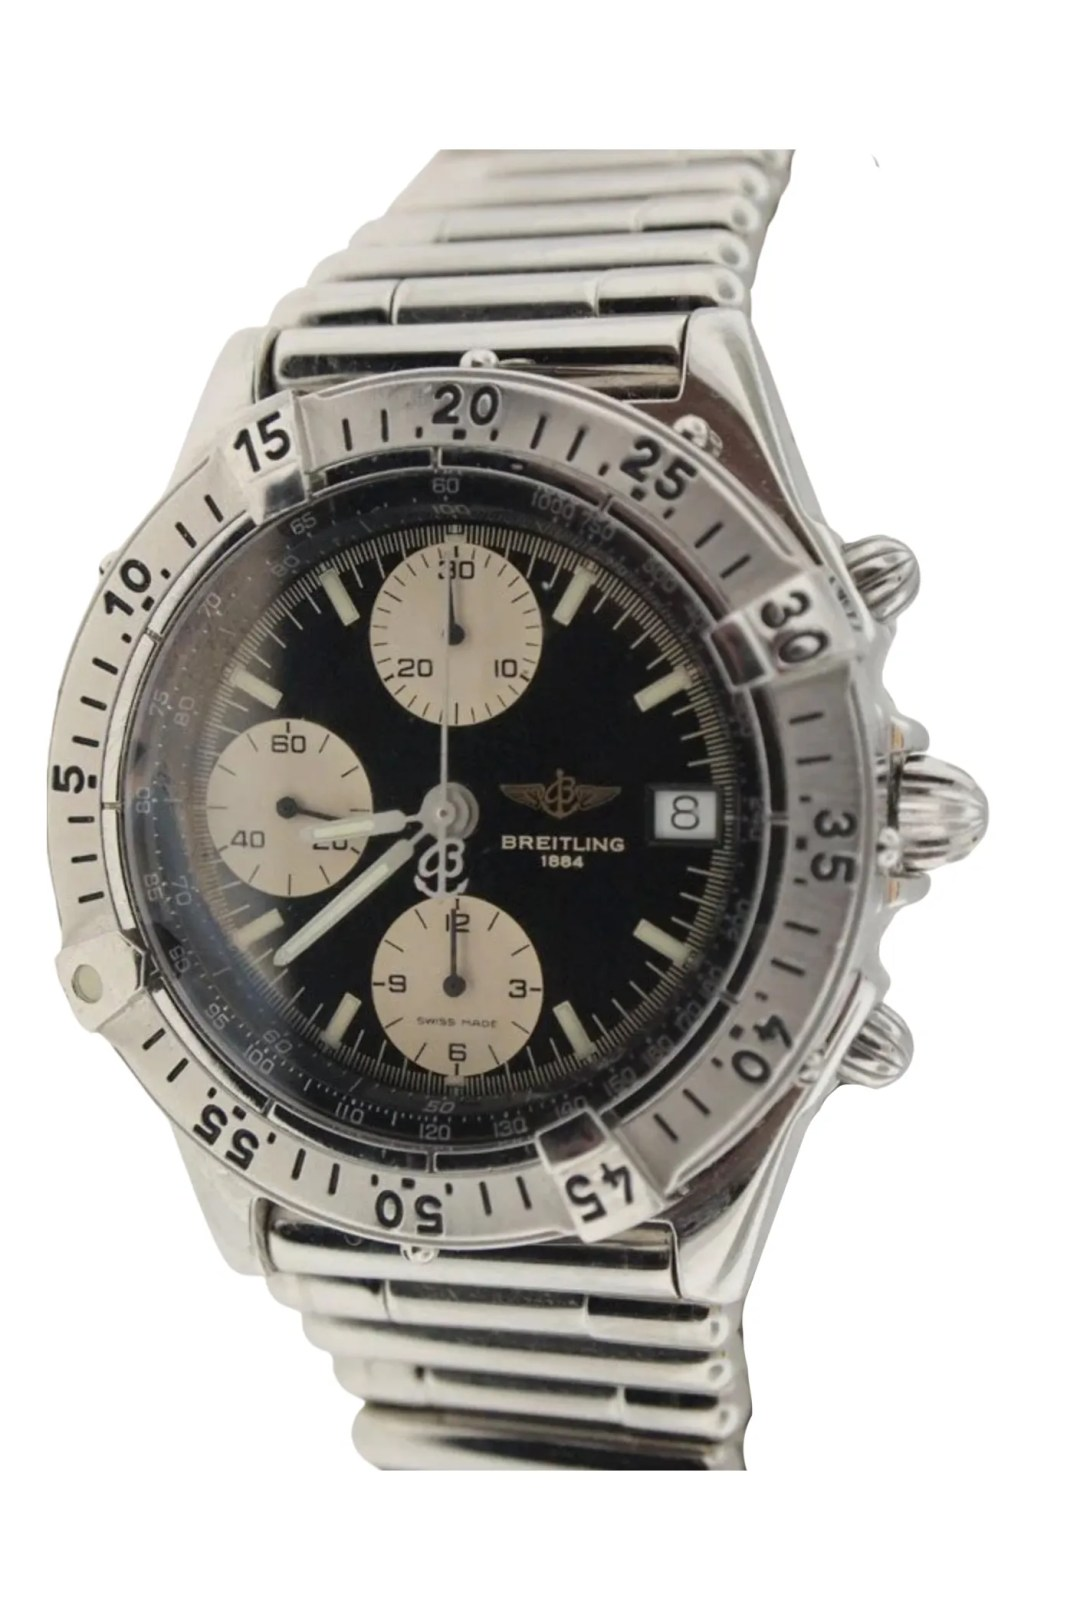 A beat up silver and black watch